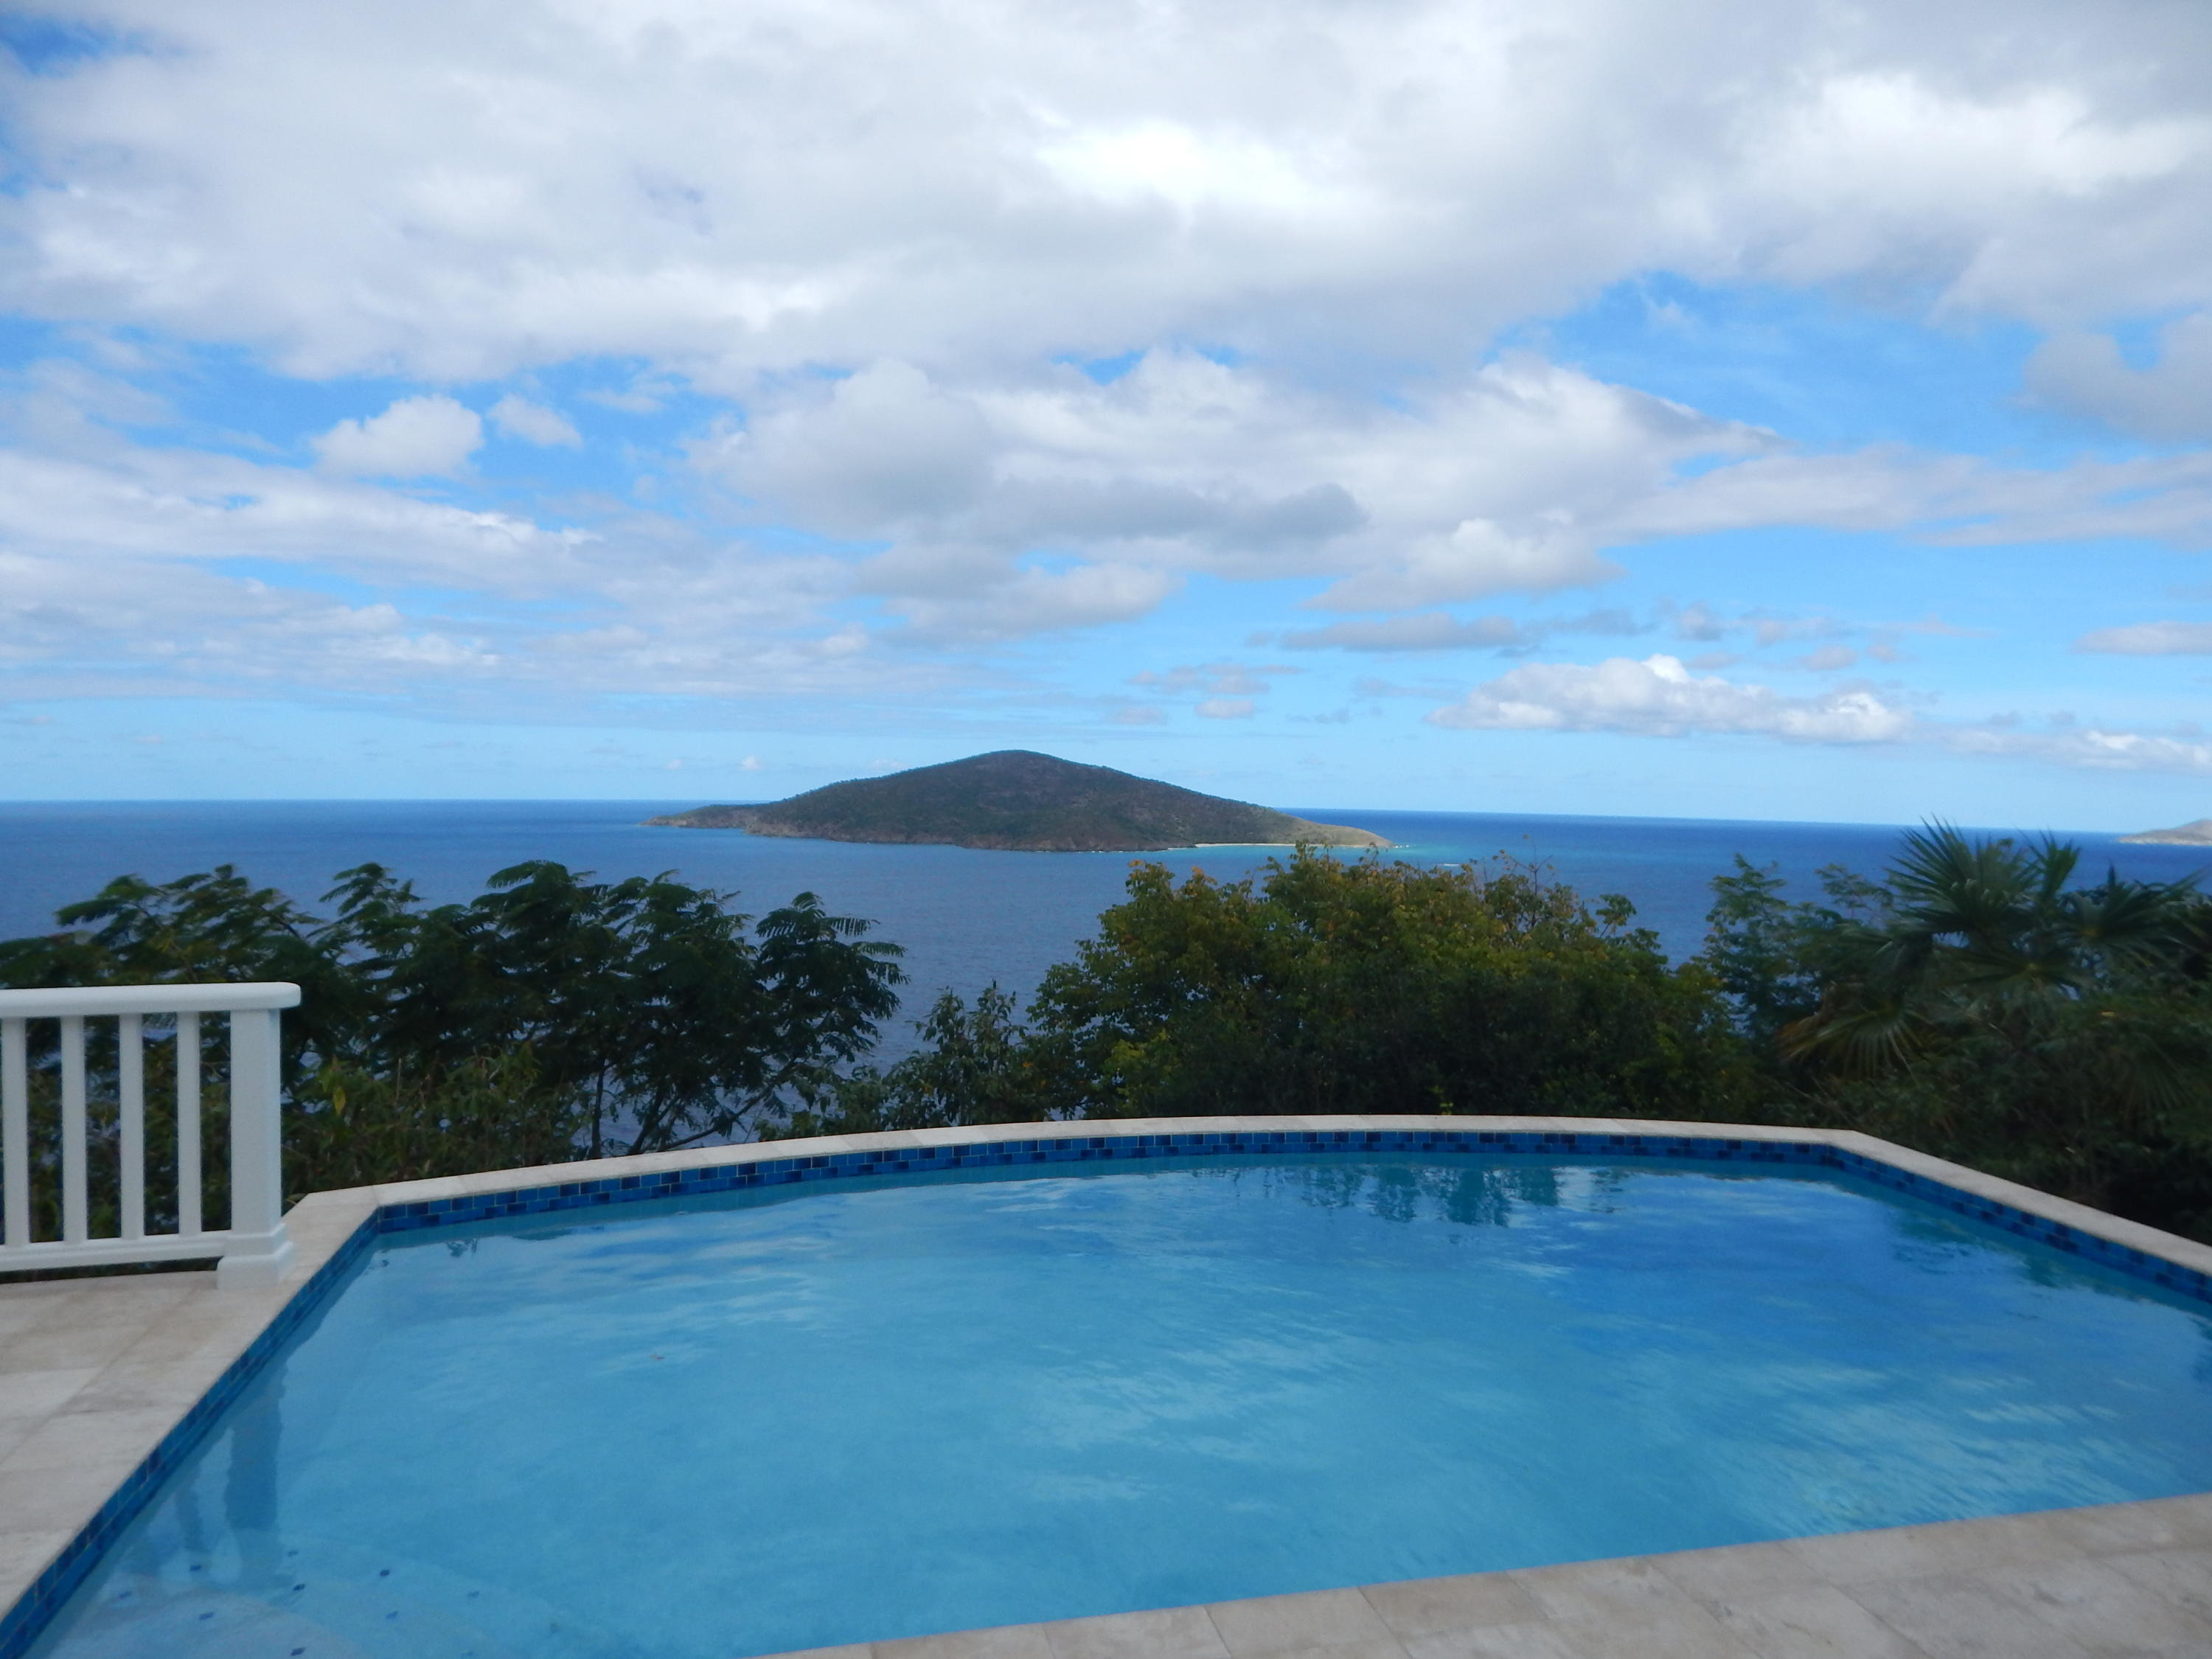 Single Family Home for Sale at C-6-T 119 Lovenlund GNS C-6-T 119 Lovenlund GNS St Thomas, Virgin Islands 00802 United States Virgin Islands